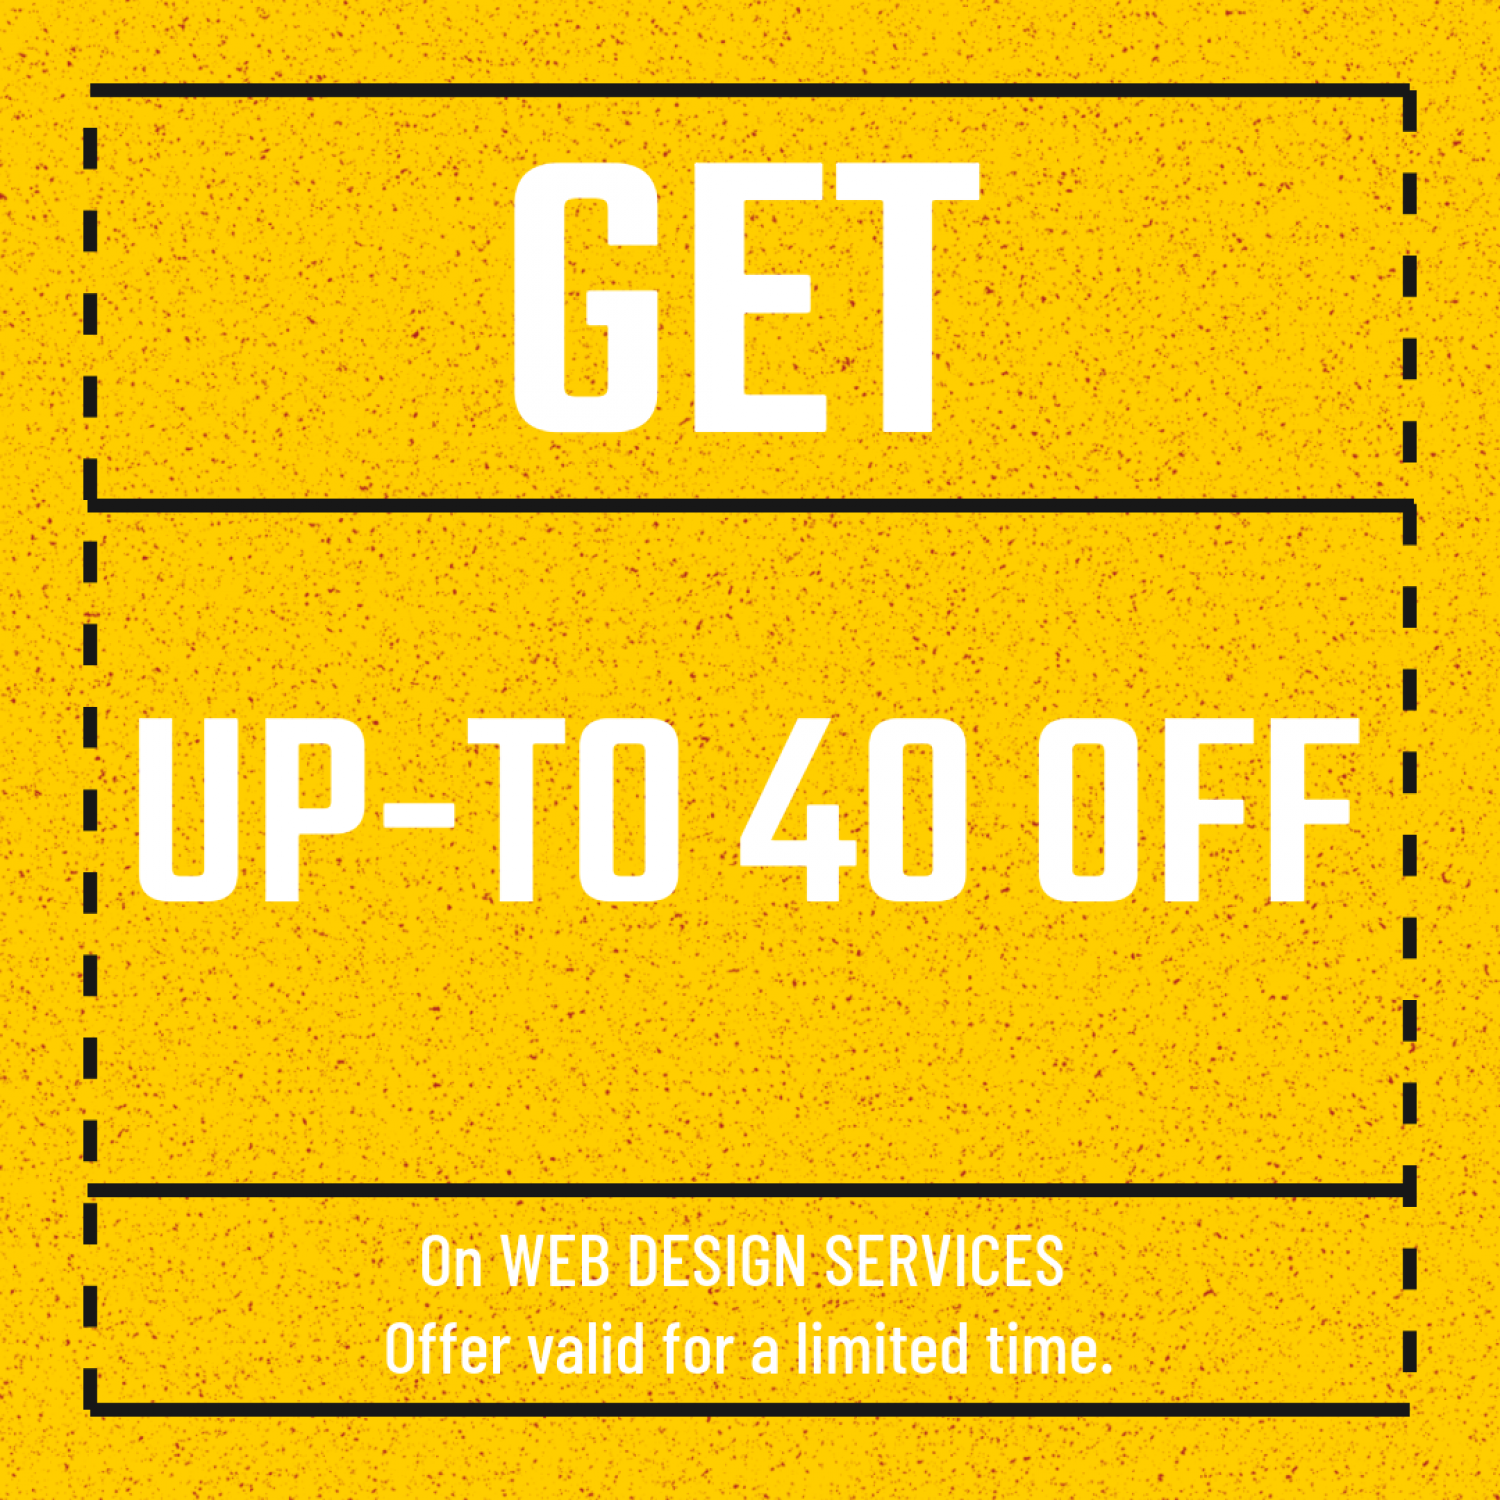 ESG is offering upto 40% off on web designing and development services Infographic